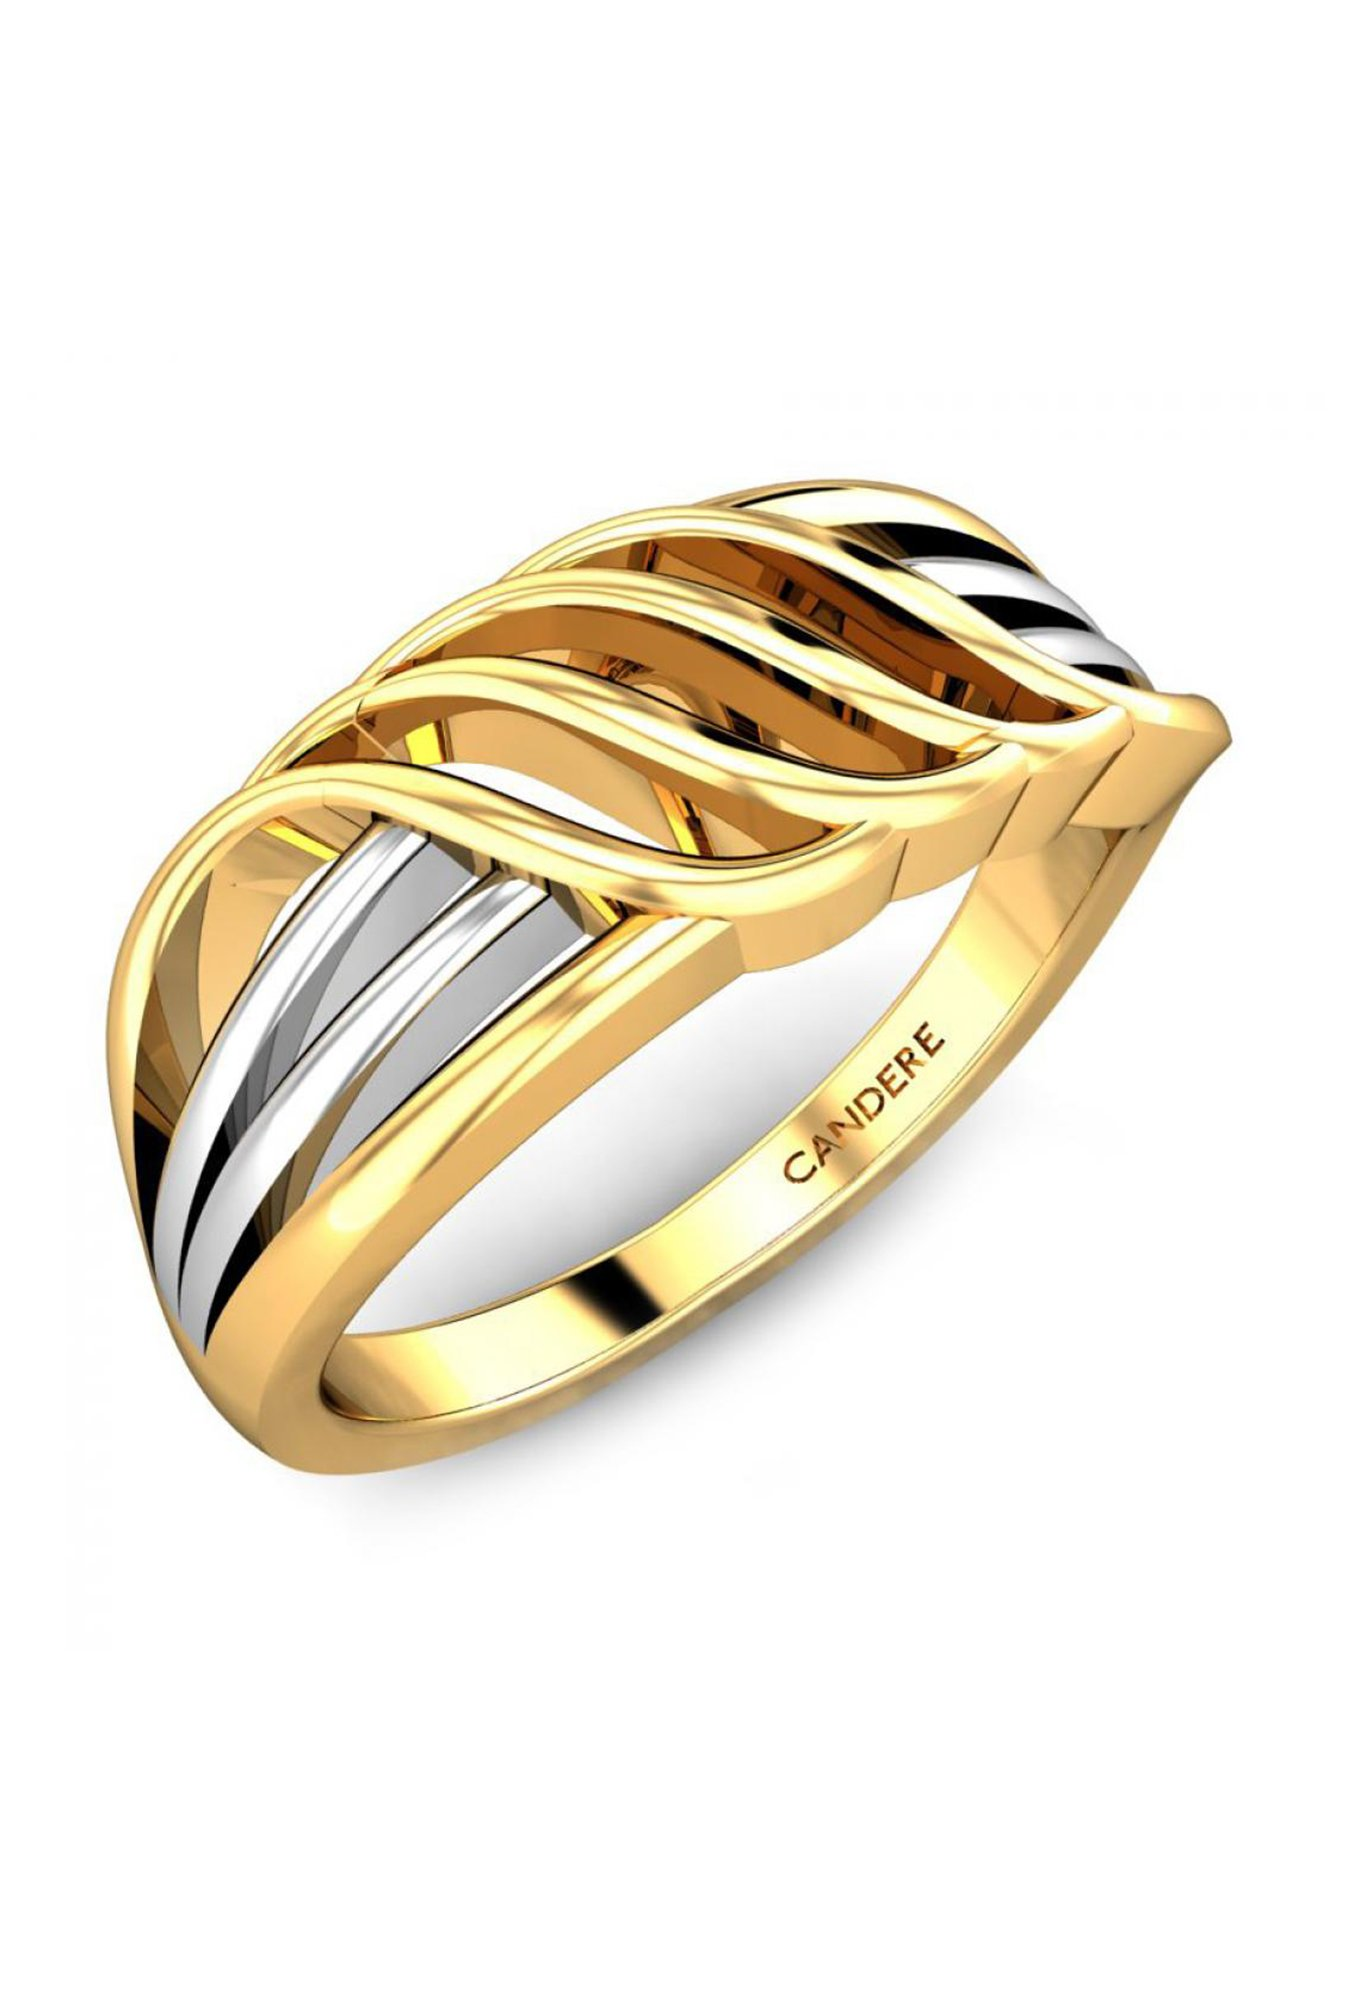 of rings show engagement solitaire ring best metal or jewellry rose s me your website yellow gold with white fresh